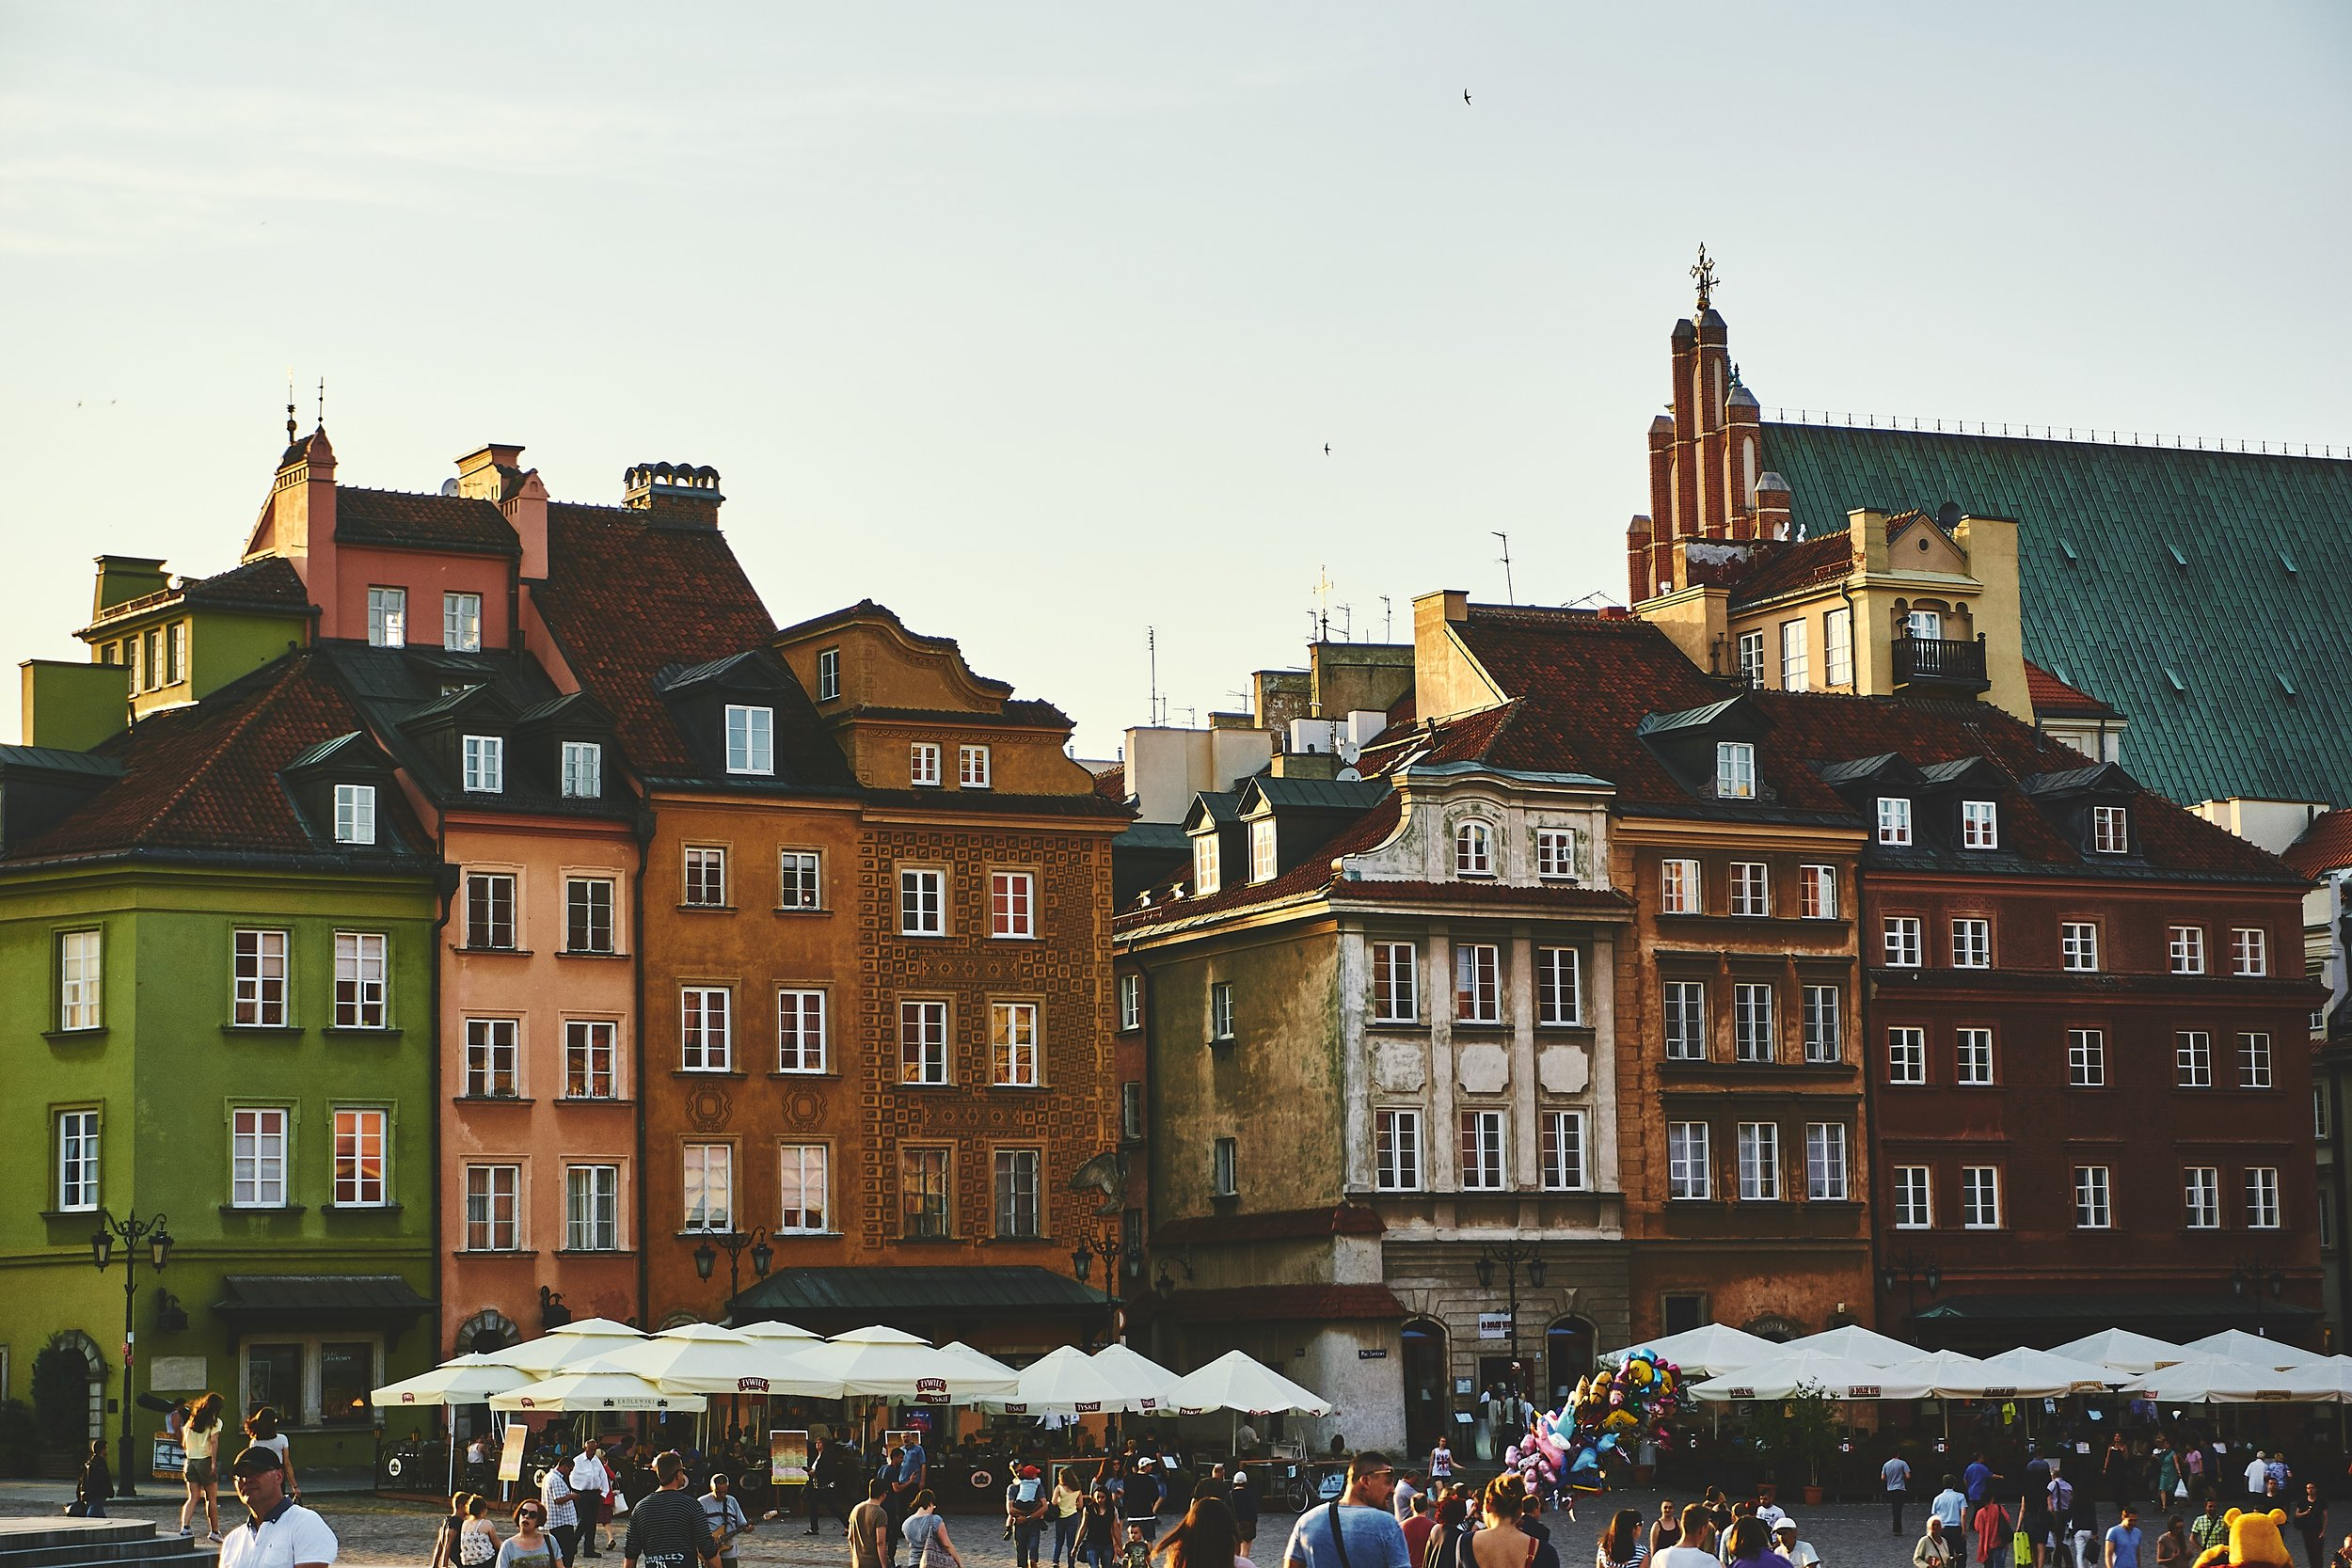 We took a leap of faith, sold all of our belongings, and then moved to Poland.